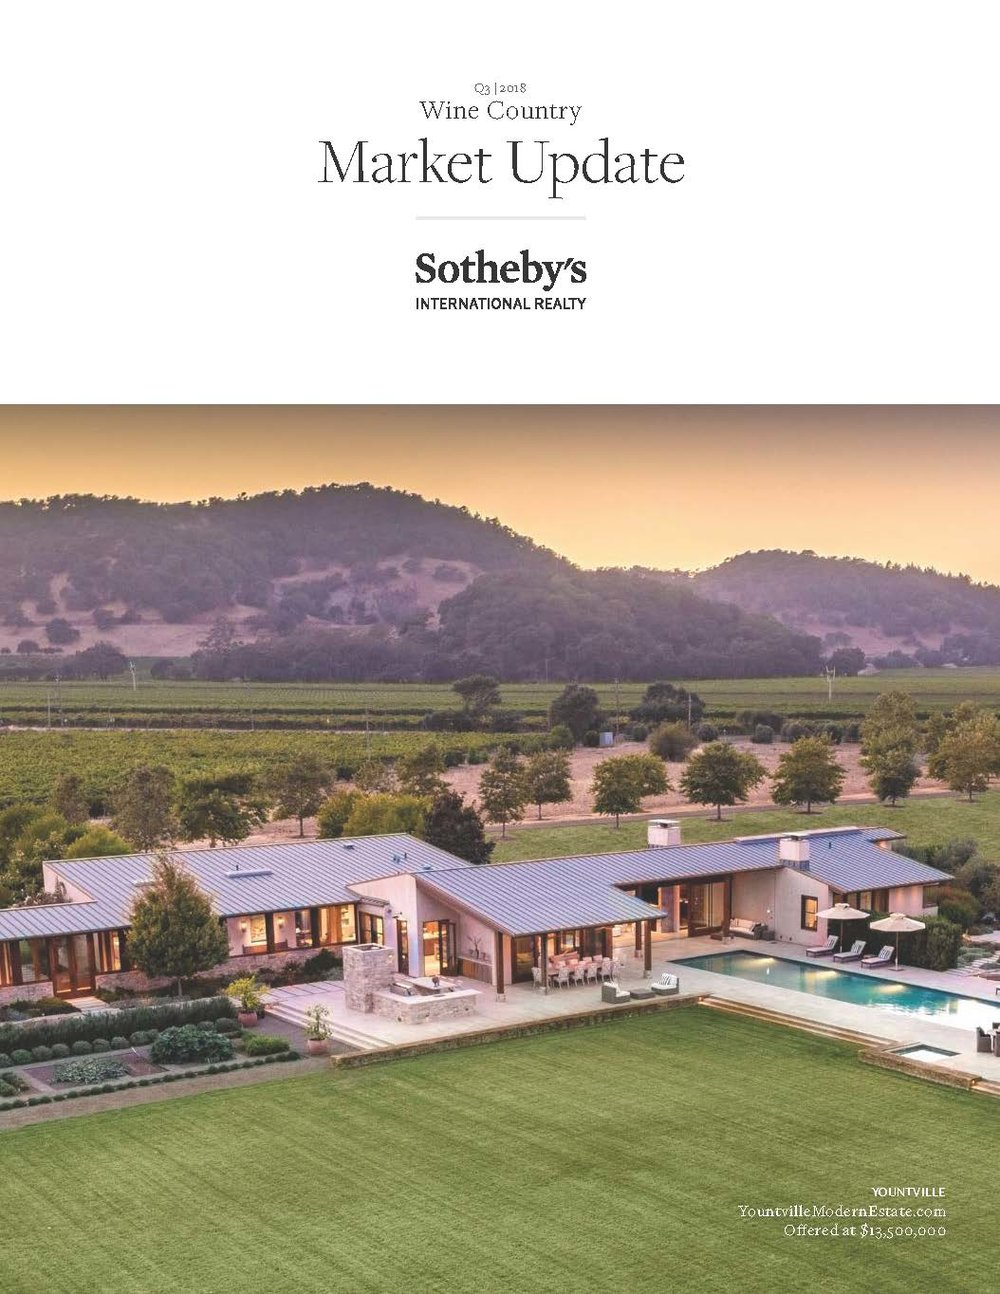 Pages from Wine Country Q3 2018 Market Update[7282].jpg